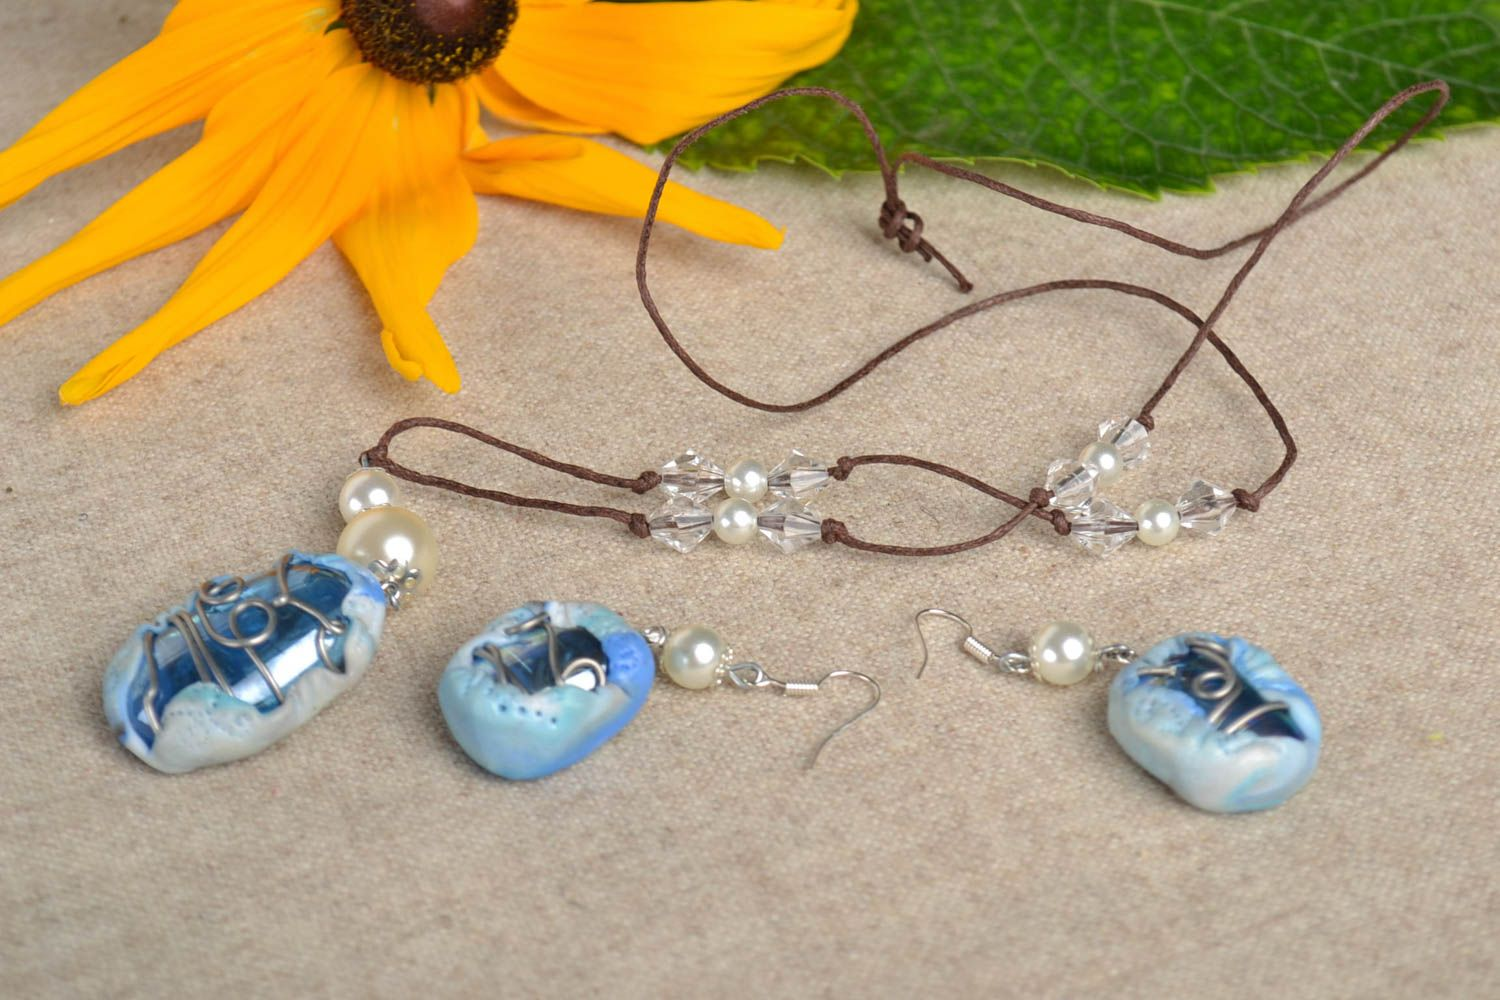 Jewelry set handmade earrings pendant necklace polymer clay fashion accessories photo 1